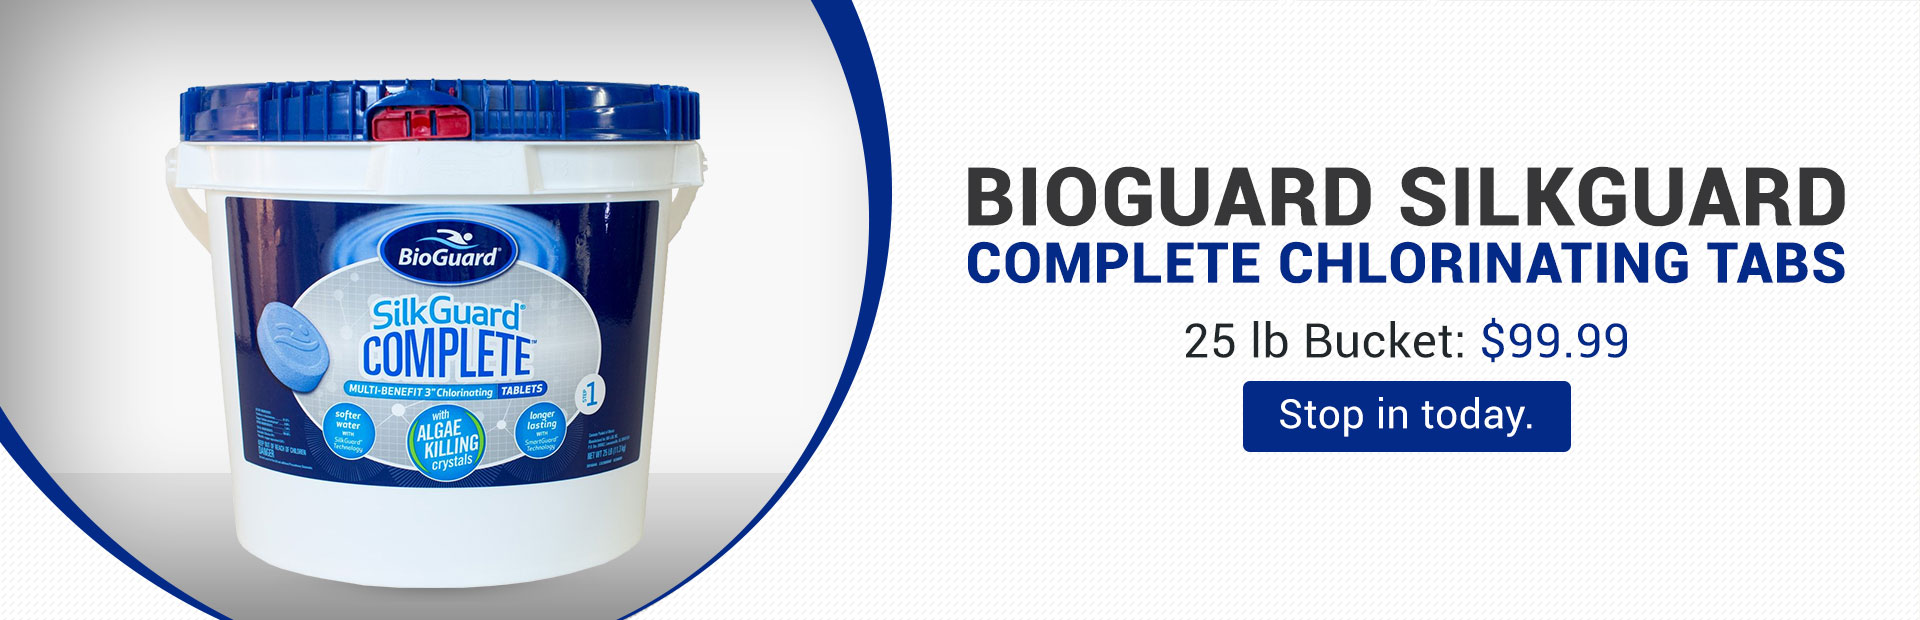 BioGuard SilkGuard Complete Chlorinating Tabs: Get a 25 lb bucket for $99.99!